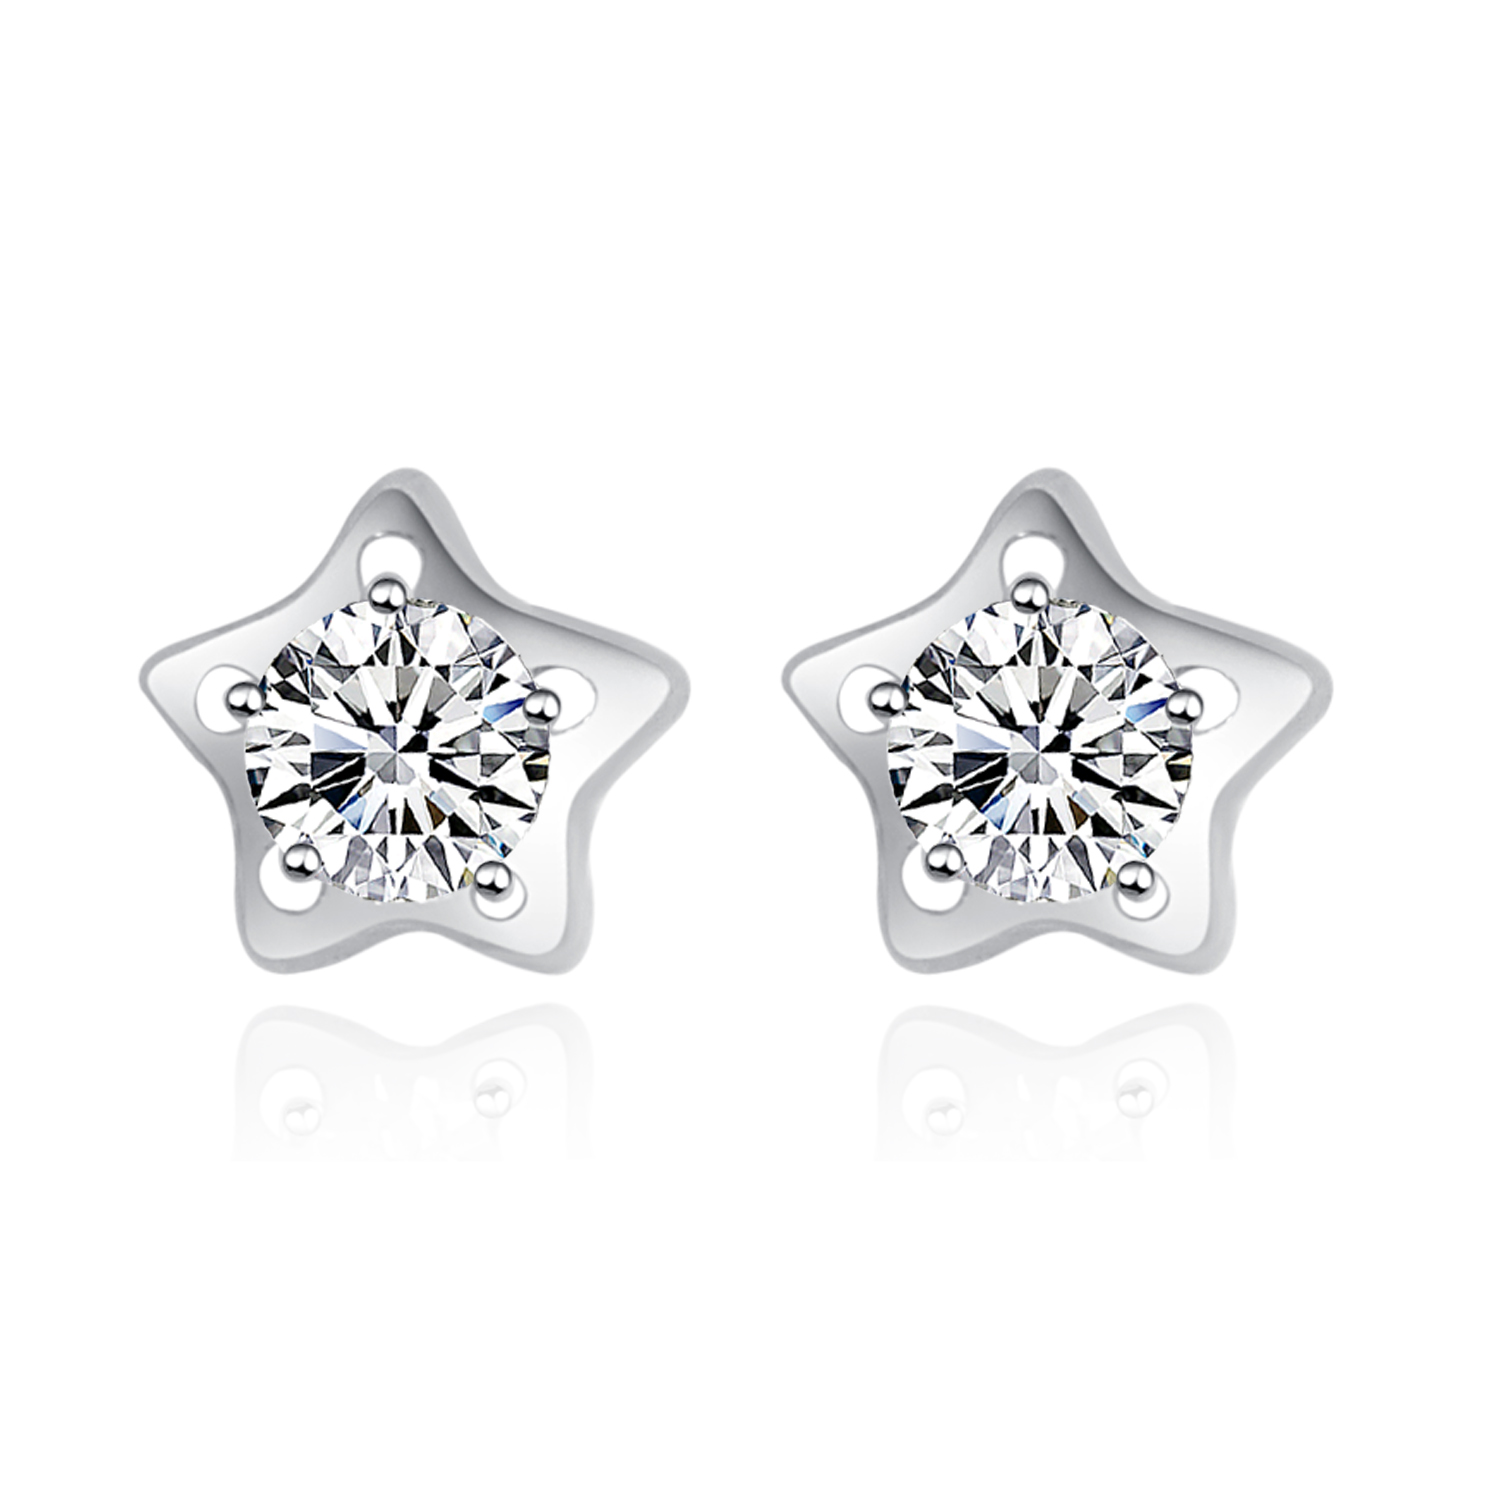 jgood silver earring bling earrings unisex stud jewelry ct sterling diamond cz